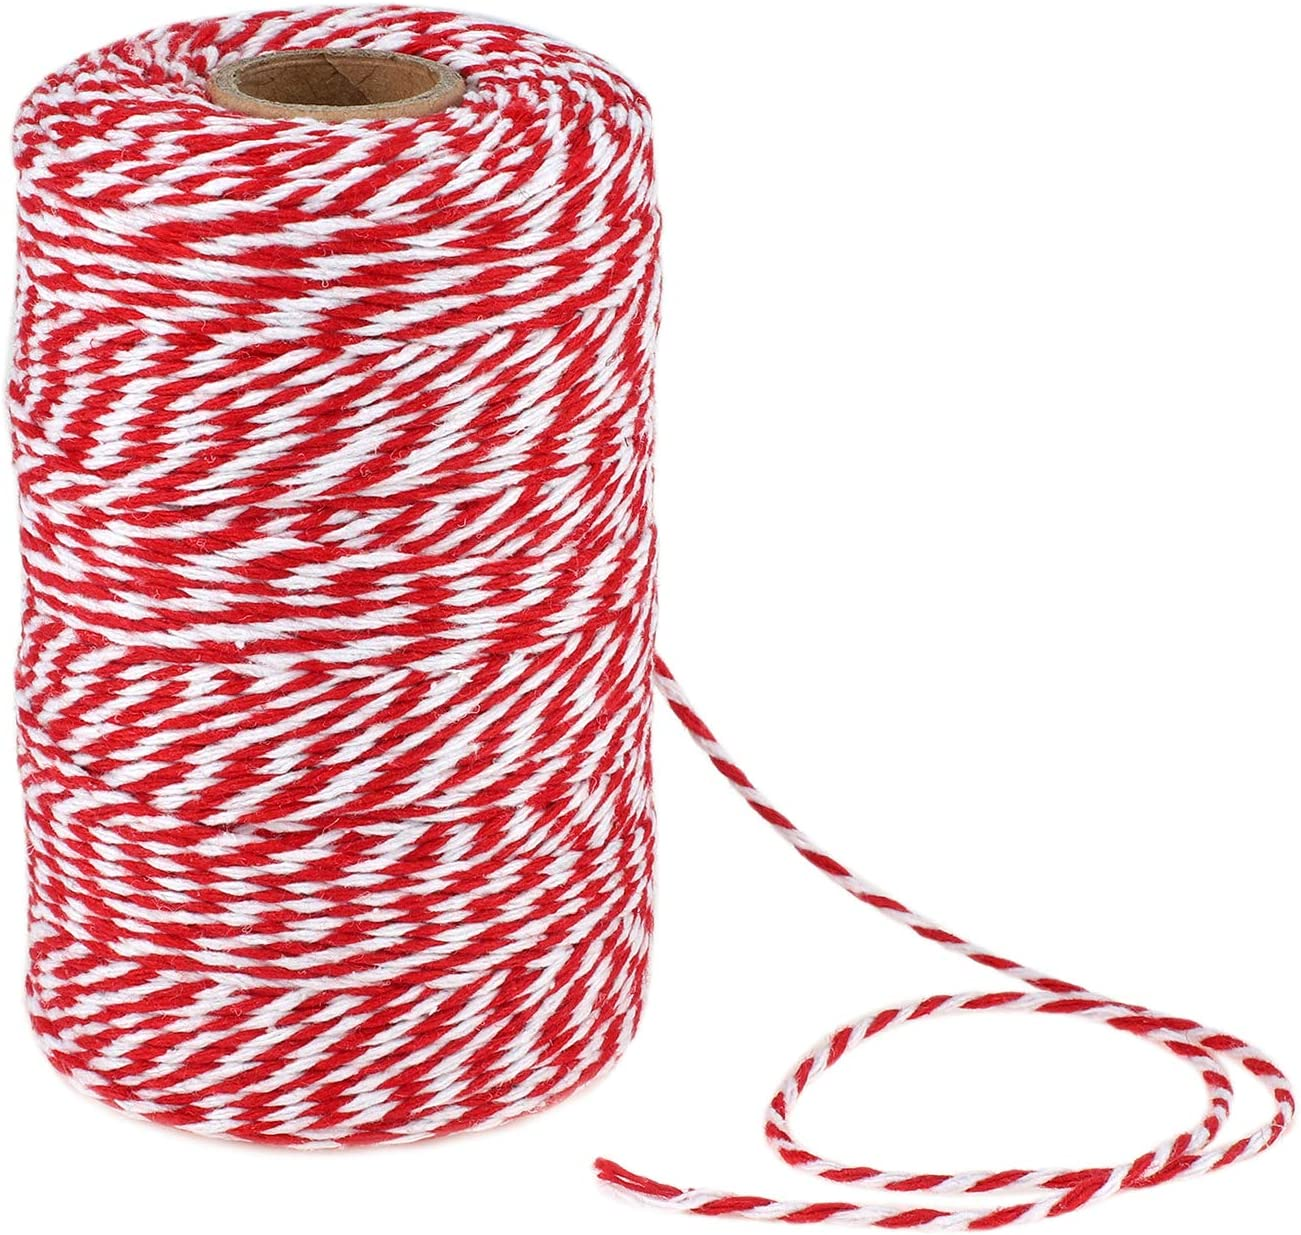 656 Feet Safety and trust Red White Twine Day Gif Colorado Springs Mall Mothers Bakers Cotton